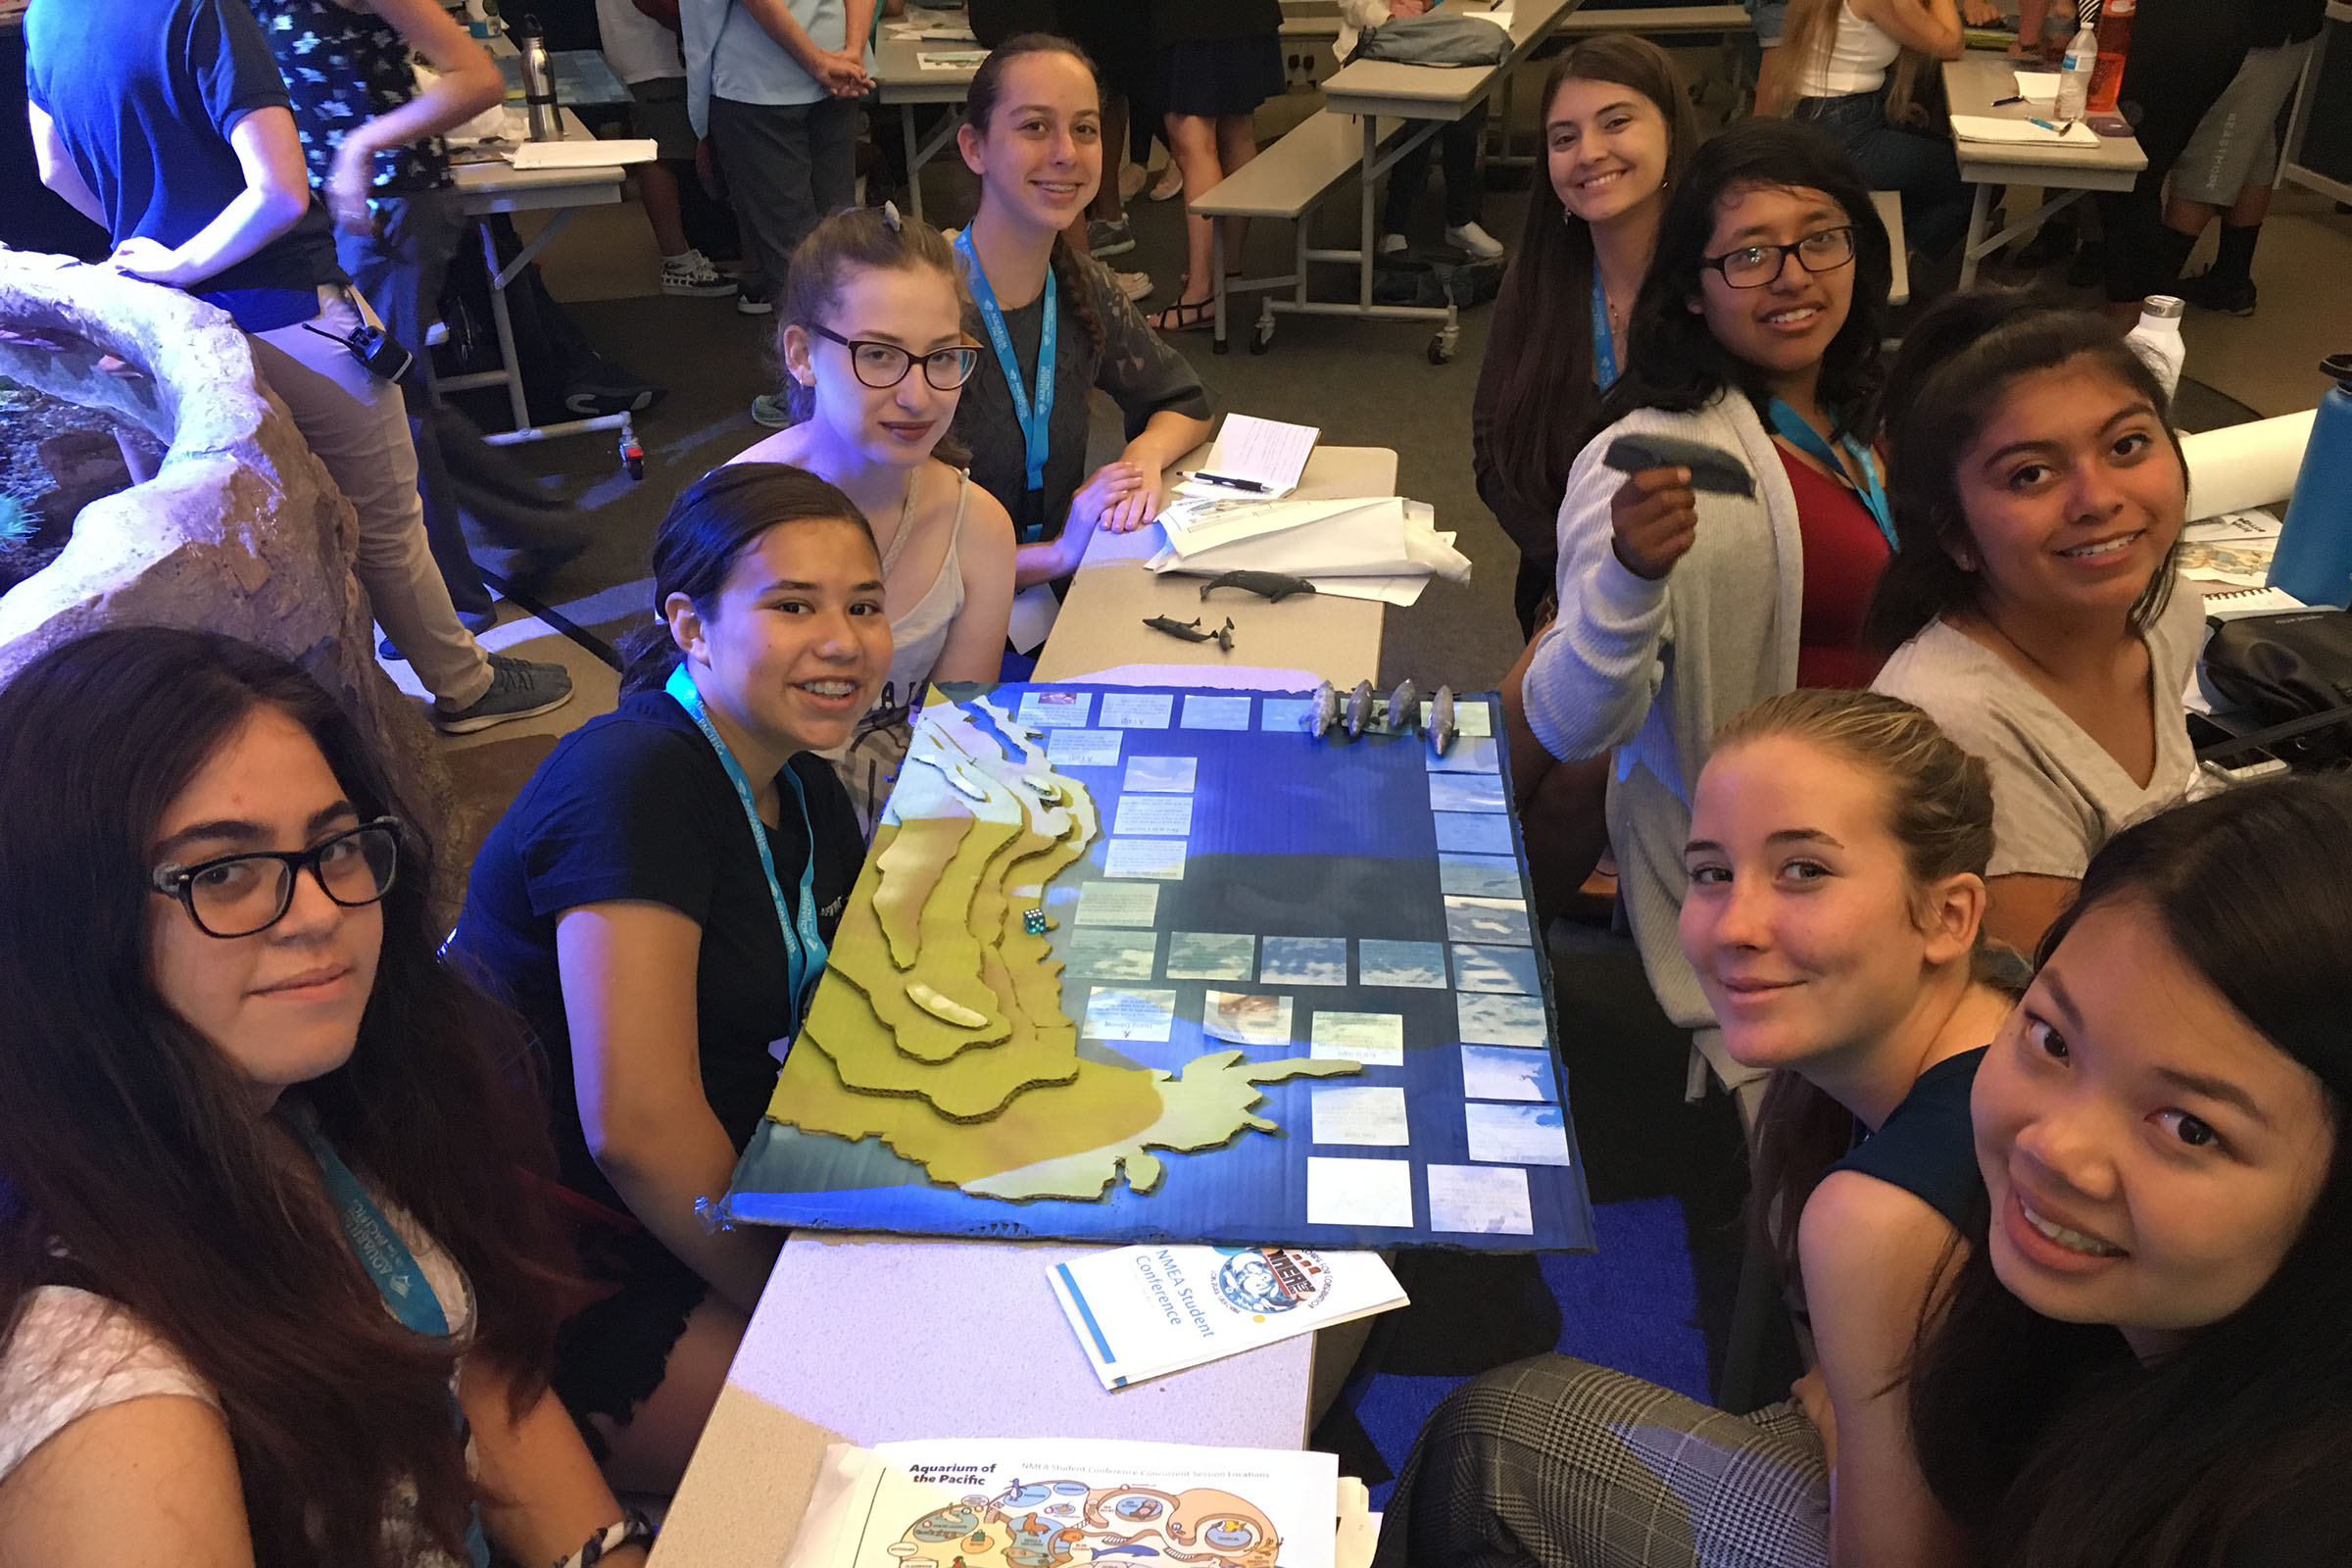 Youth engaged in an activity at the 2018 Student Conference